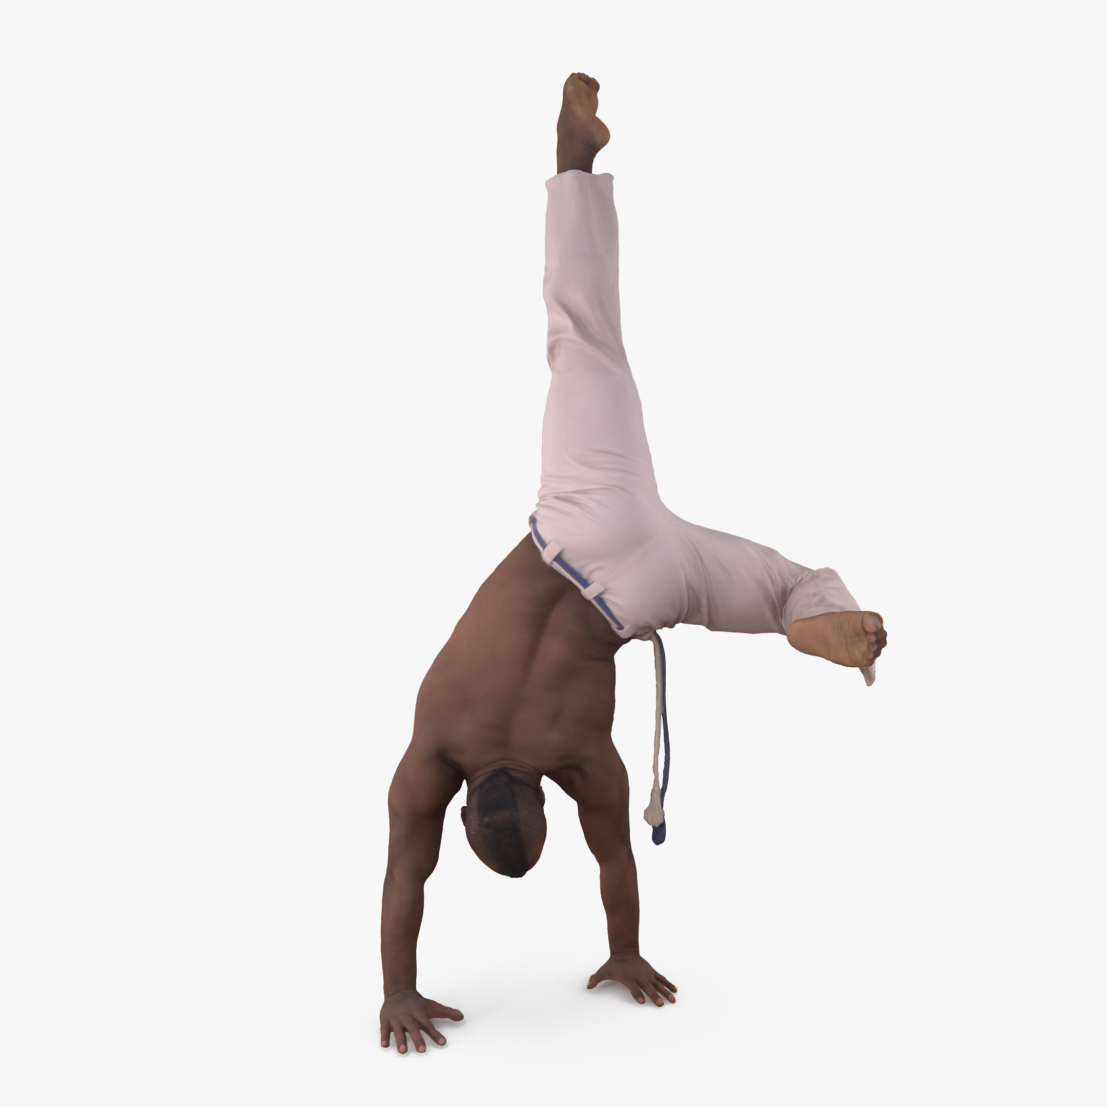 Capoeira Handstand 3D Model | 3DTree Scanning Studio